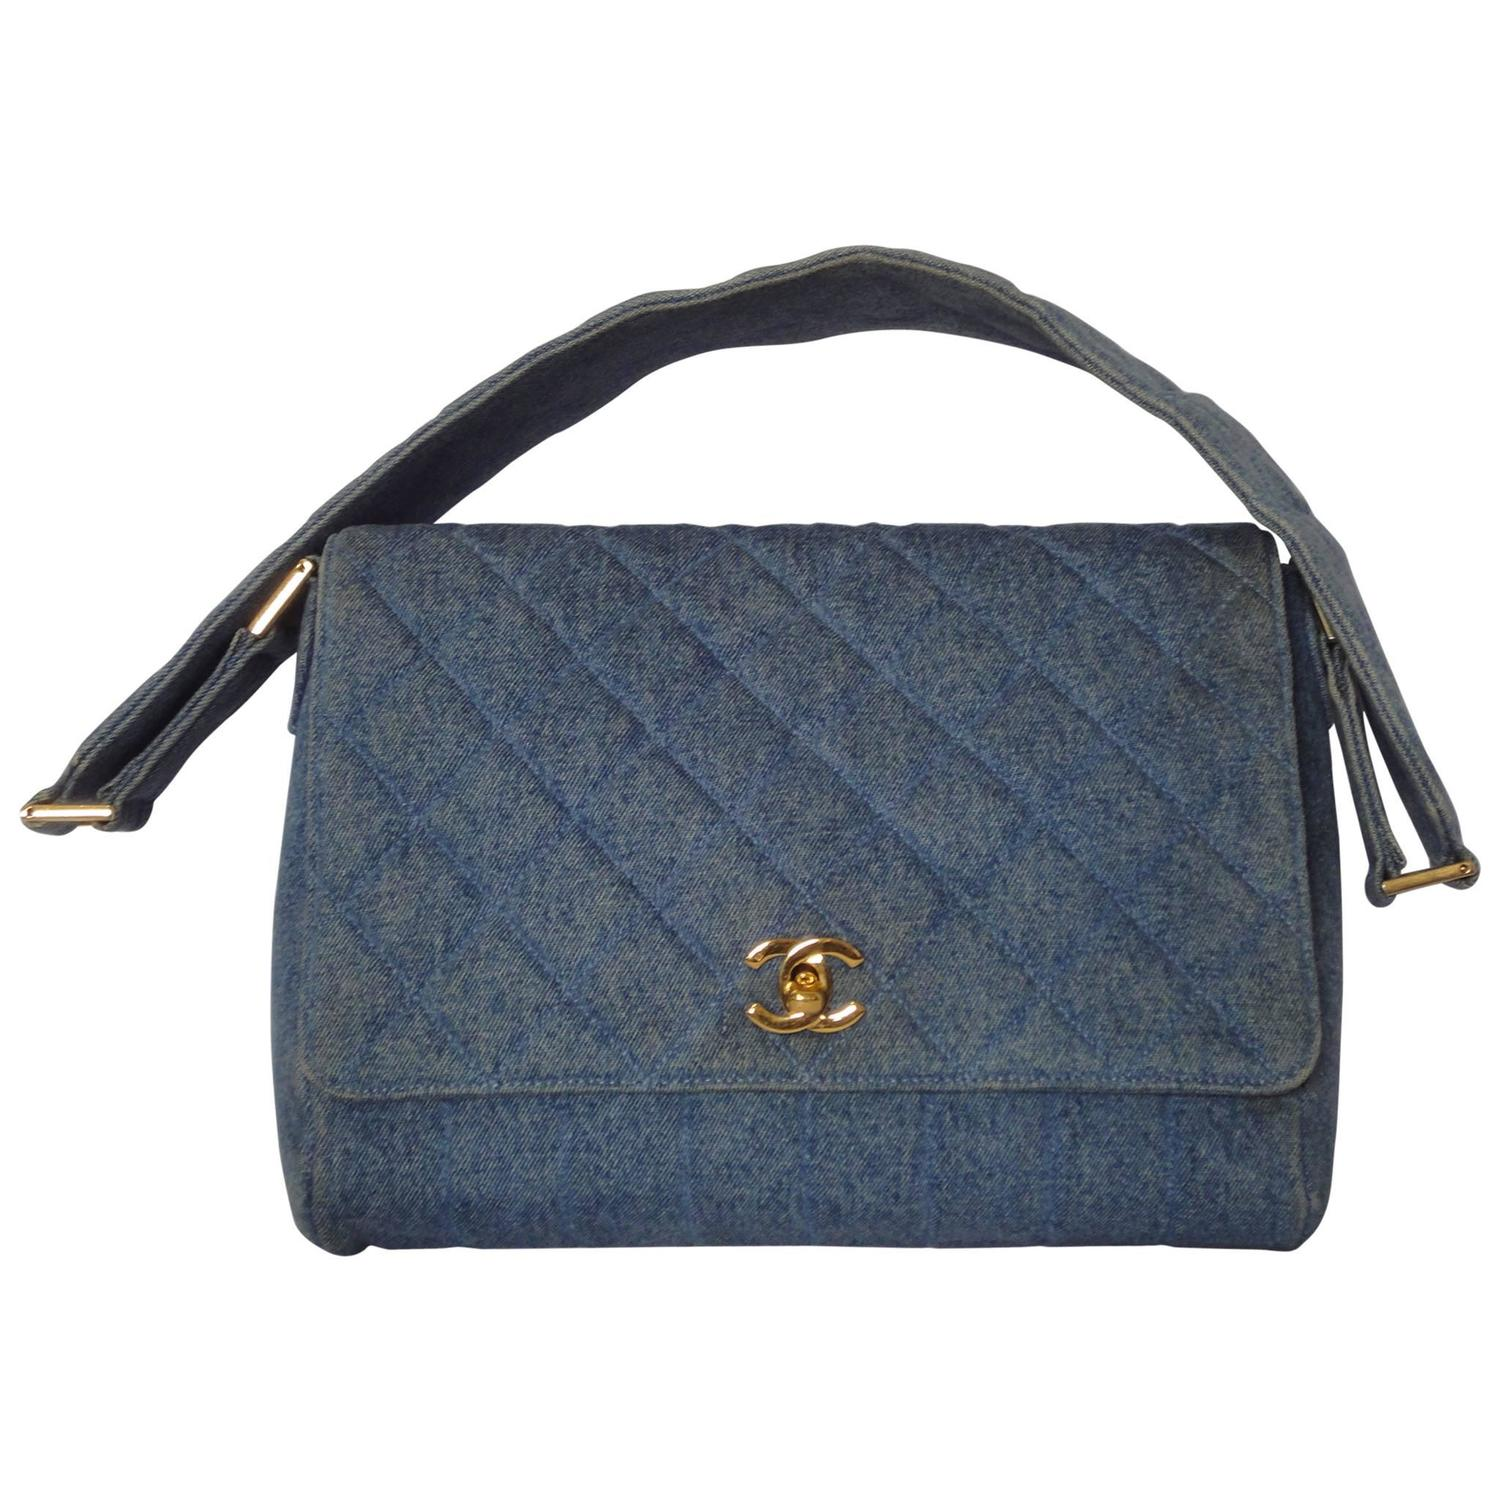 vintage chanel denim bag with golden cc closure and